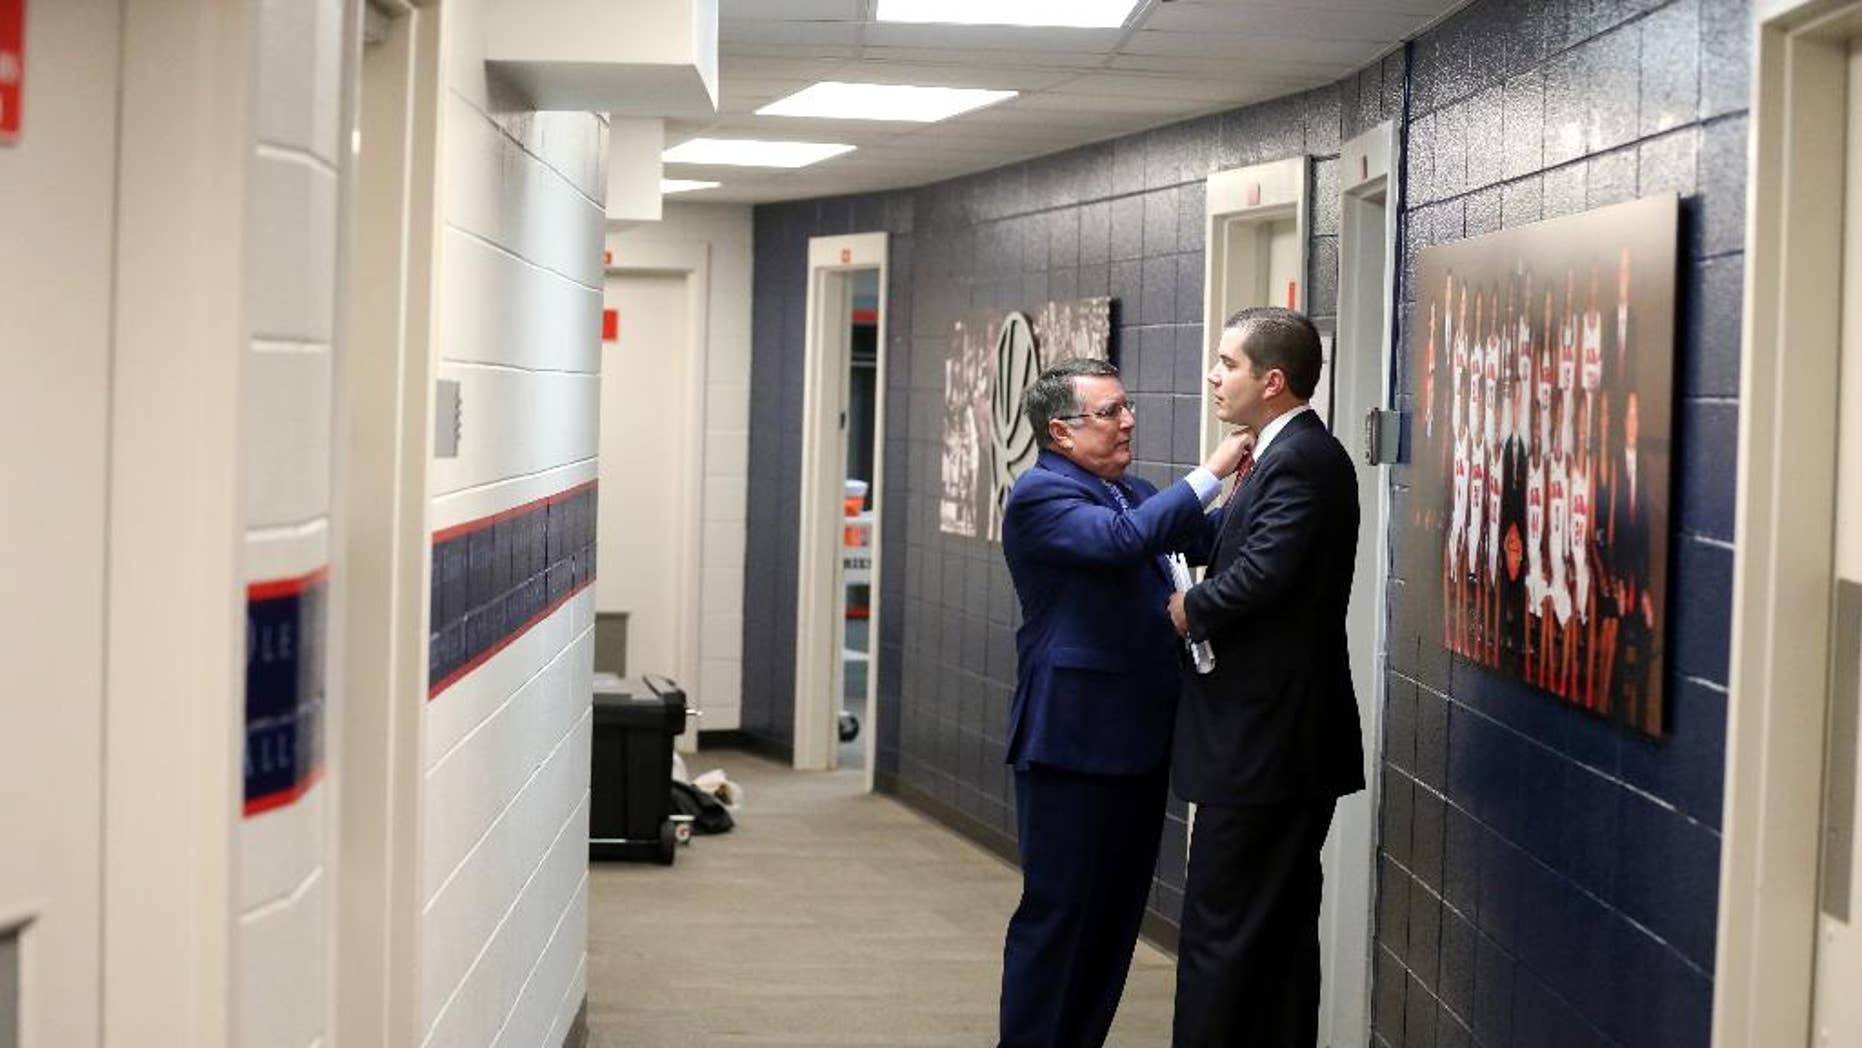 This Nov. 23, 2014, photo proved by The University of Mississippi Athletics Department shows Mississippi women's basketball coach Matt Insell, right and his father, Middle Tennessee State women's basketball coach Rick Insell, before their college basketball game in Oxford, Miss. The two coaches squared off in the first ever meeting between a father and son head coaches in NCAA Division 1 women's basketball history. (AP Photo/The University of Mississippi Athletics Department, Joshua McCoy)